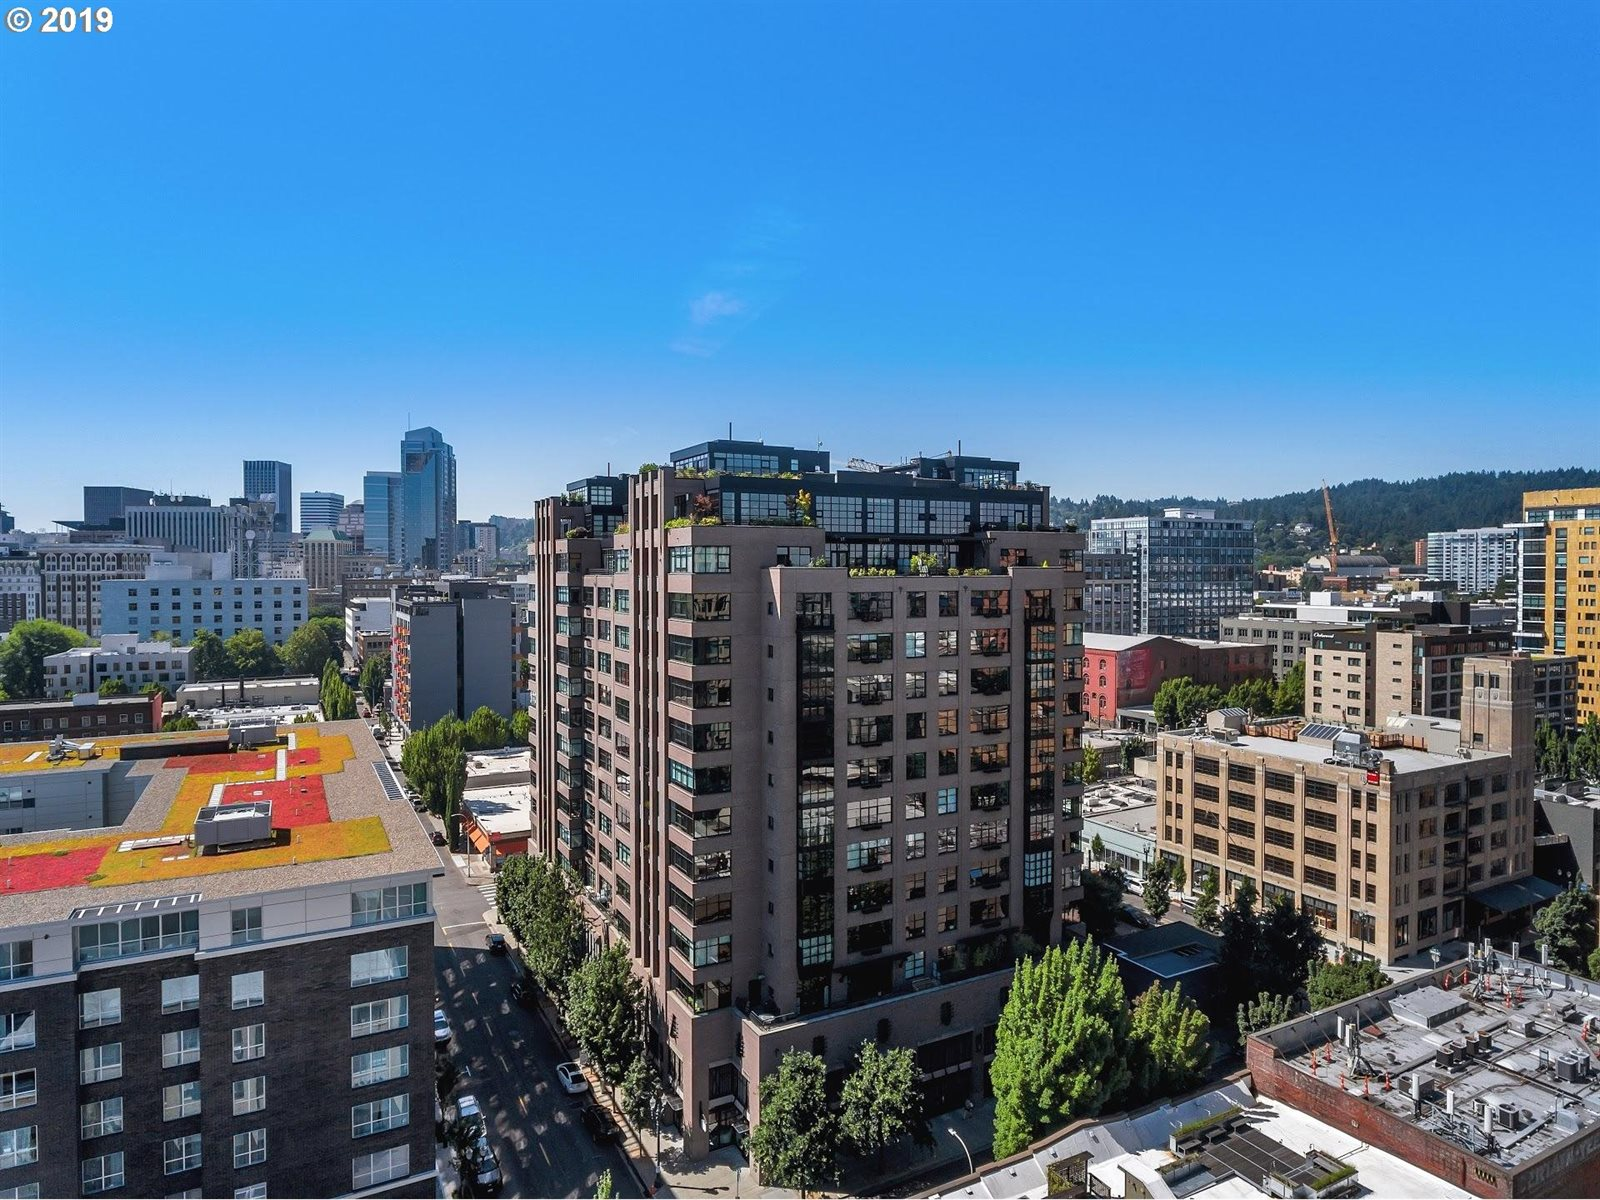 333 NW 9TH Ave, #712, Portland, OR 97209